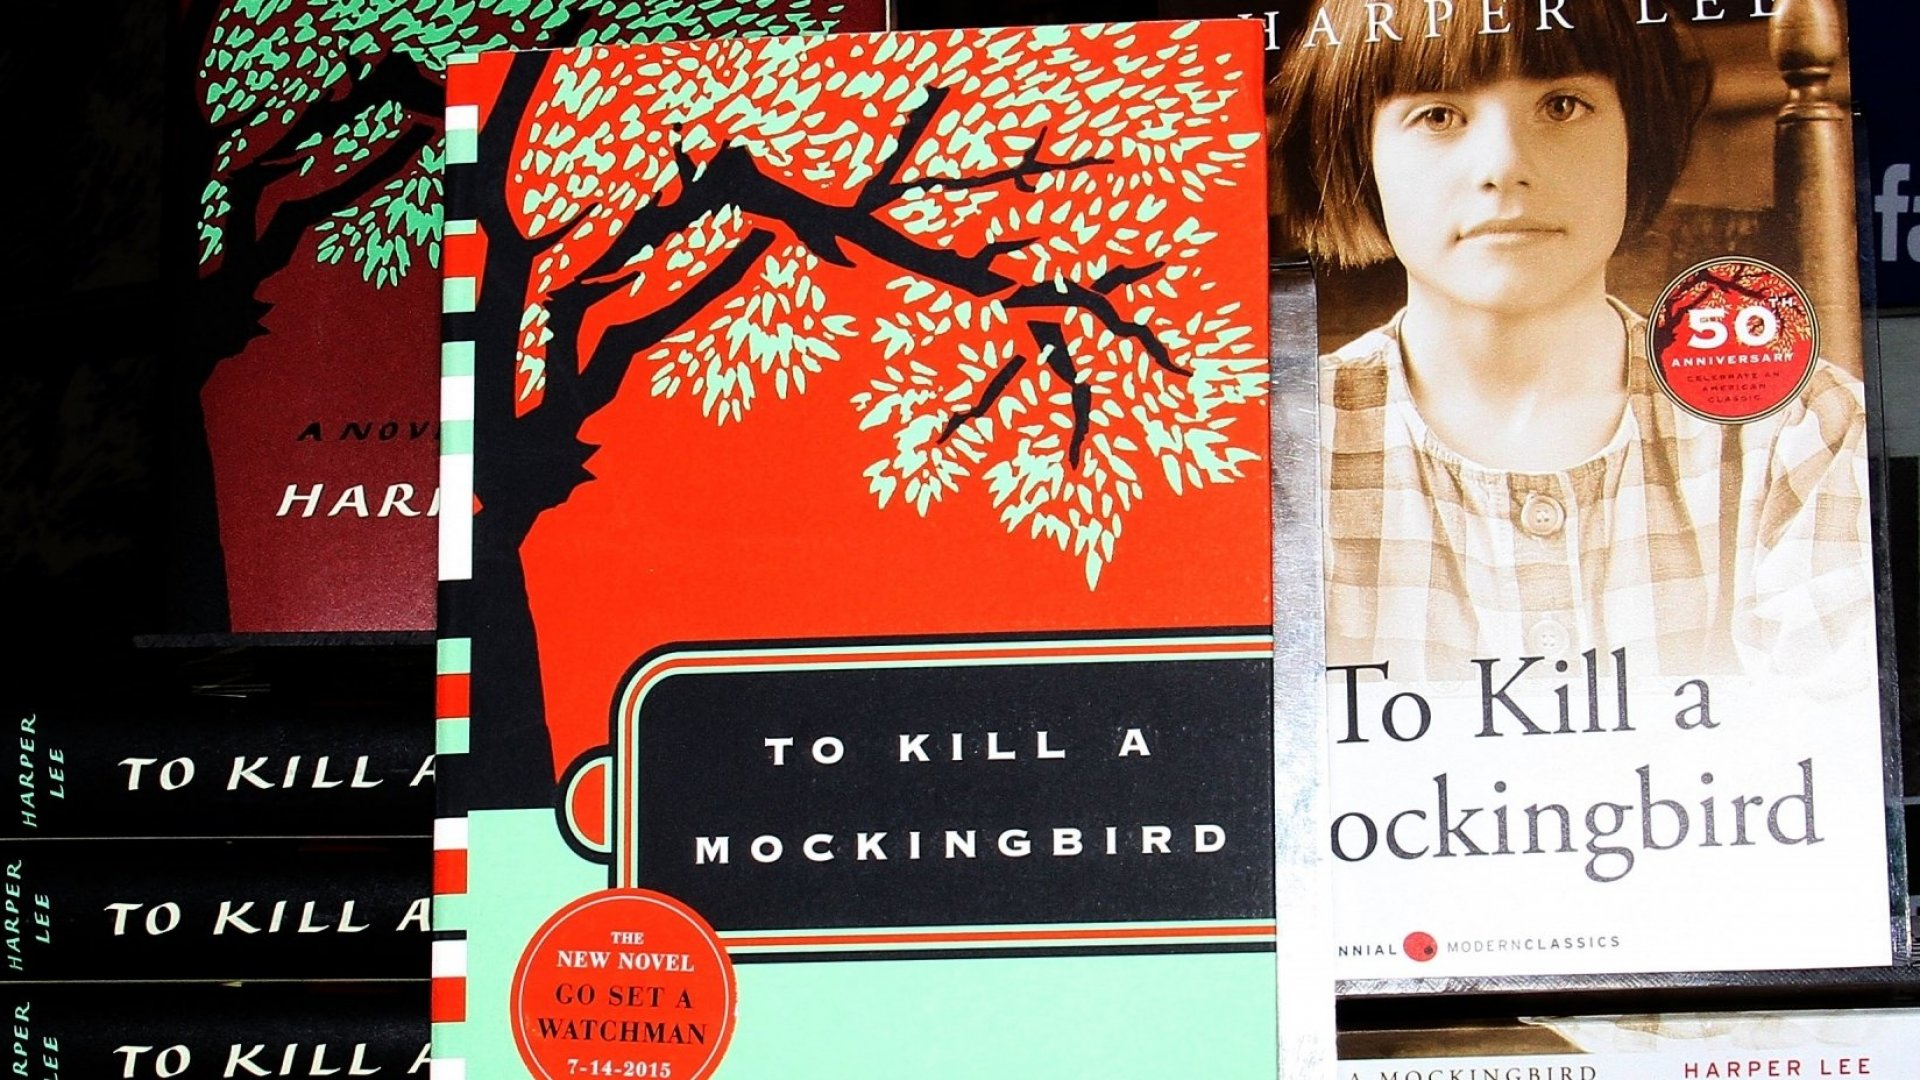 Why 'To Kill a Mockingbird' Should Be on Your Business Reading List